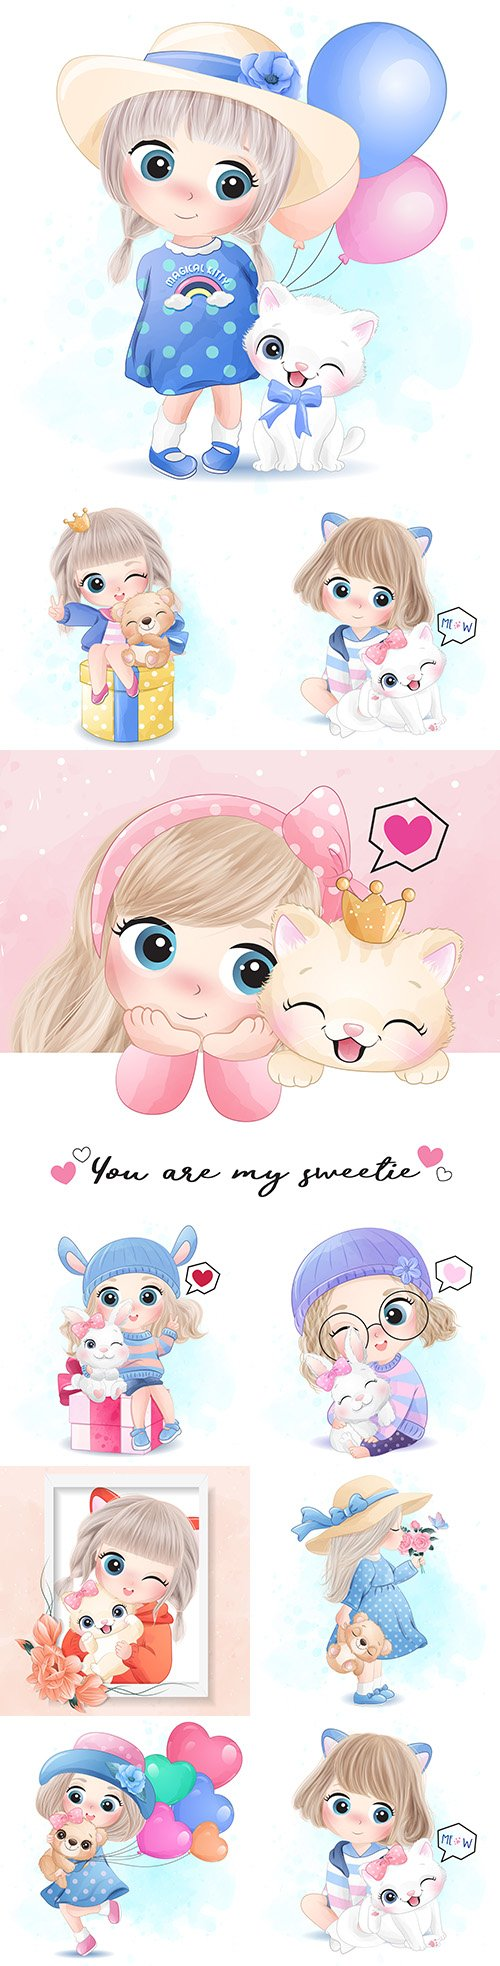 Little sweet girl with animals and flowers illustrations